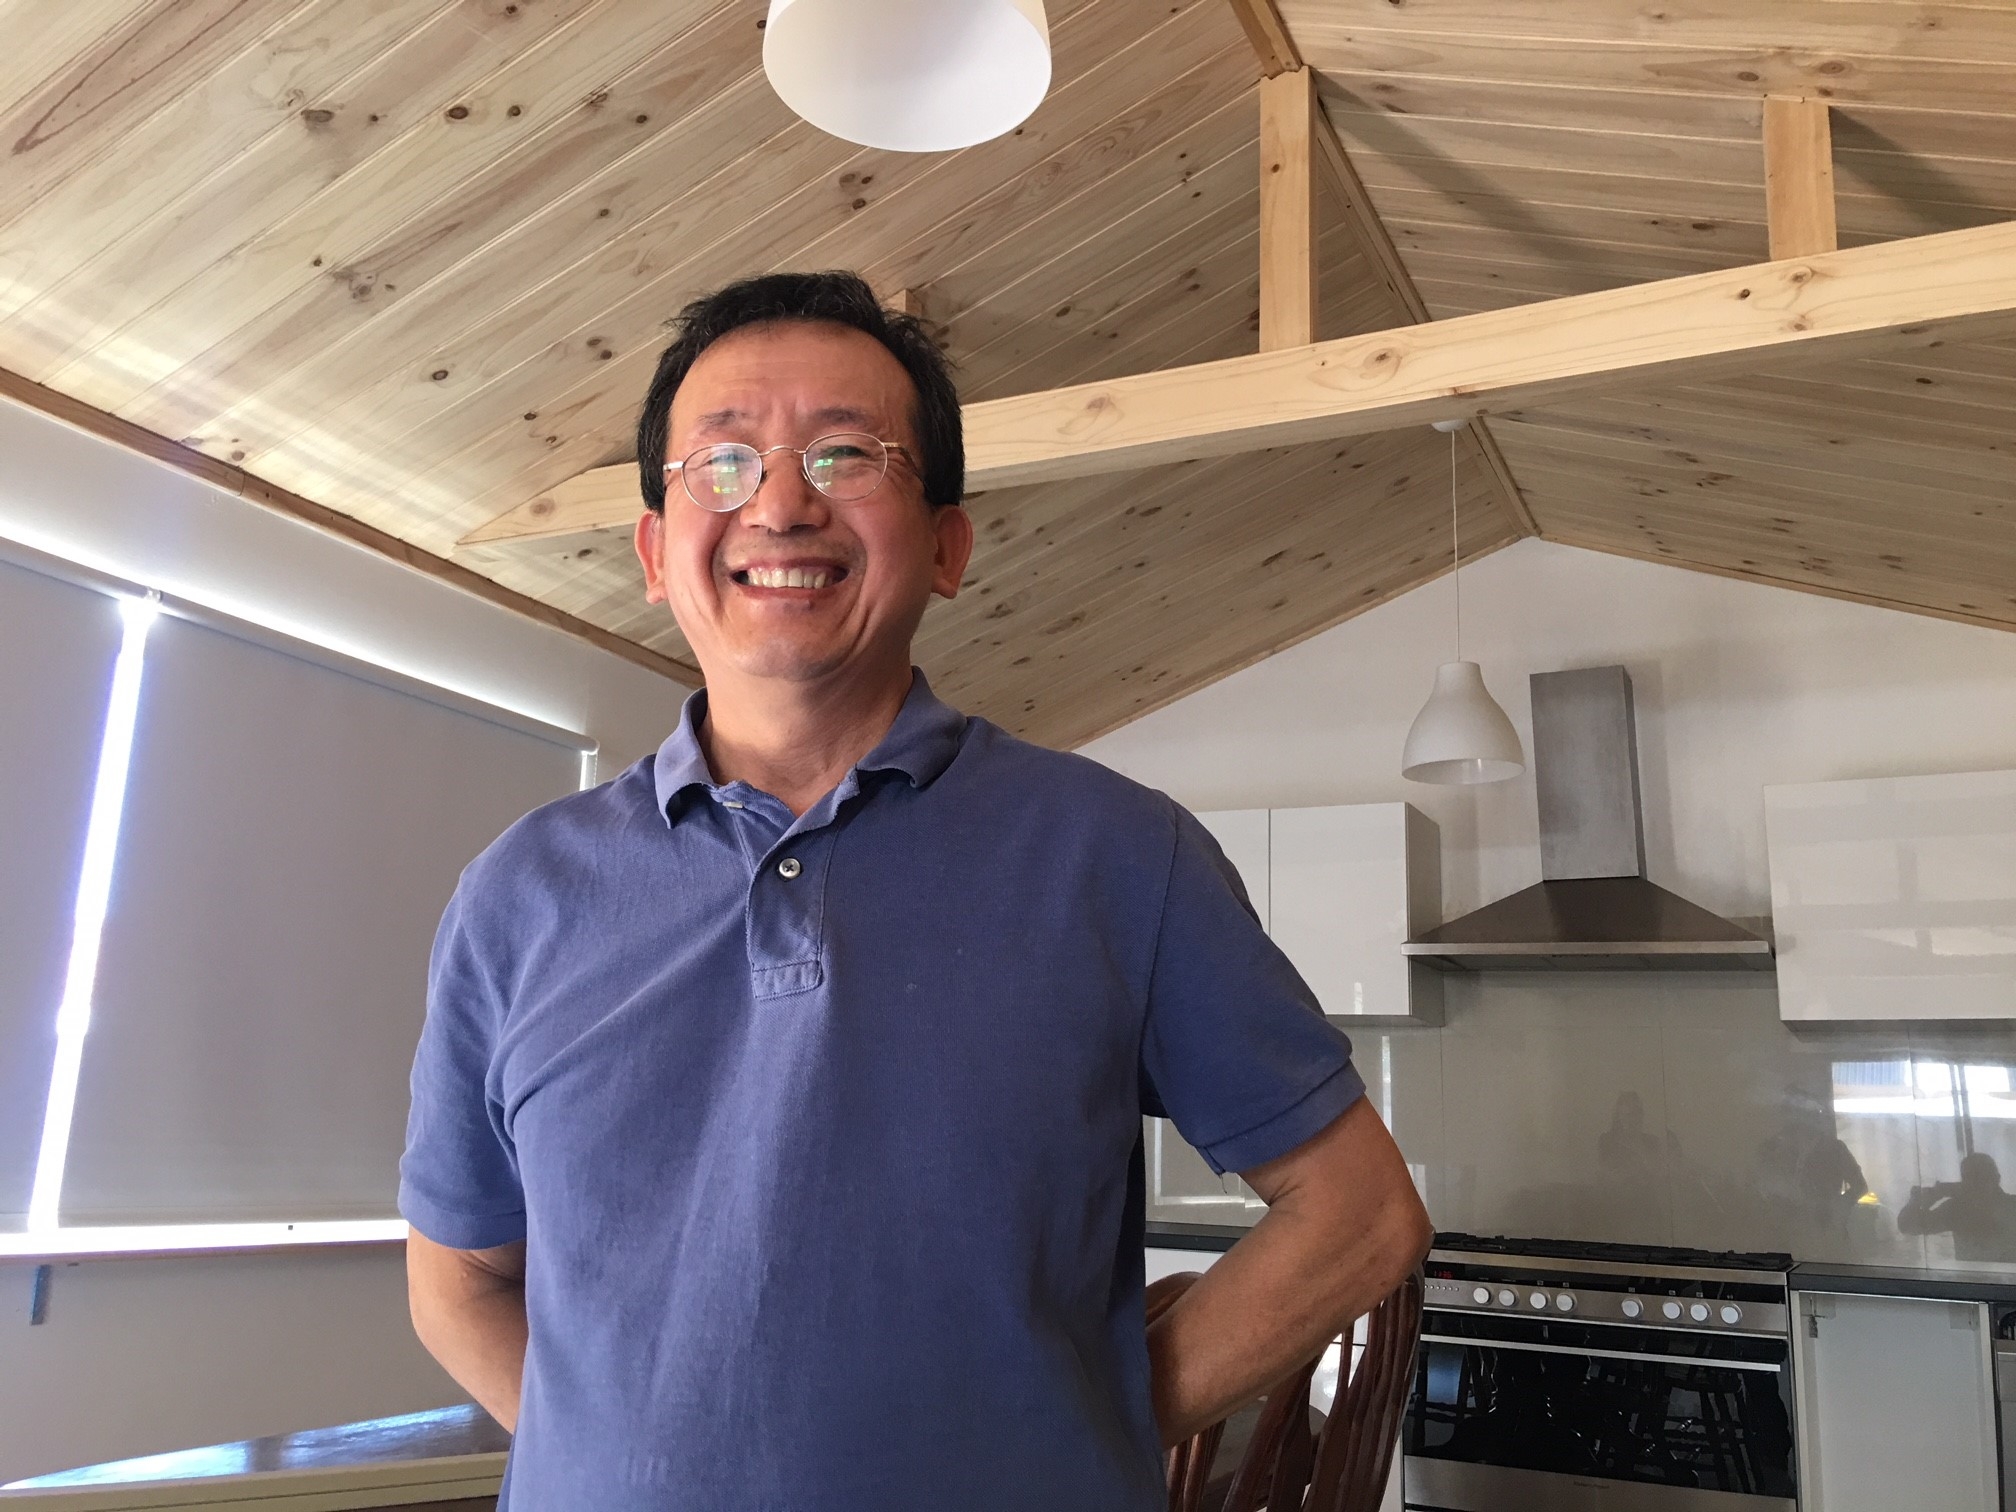 Dr Ba Huynh Pham smiling at his timber-lined ceiling in a room in his home